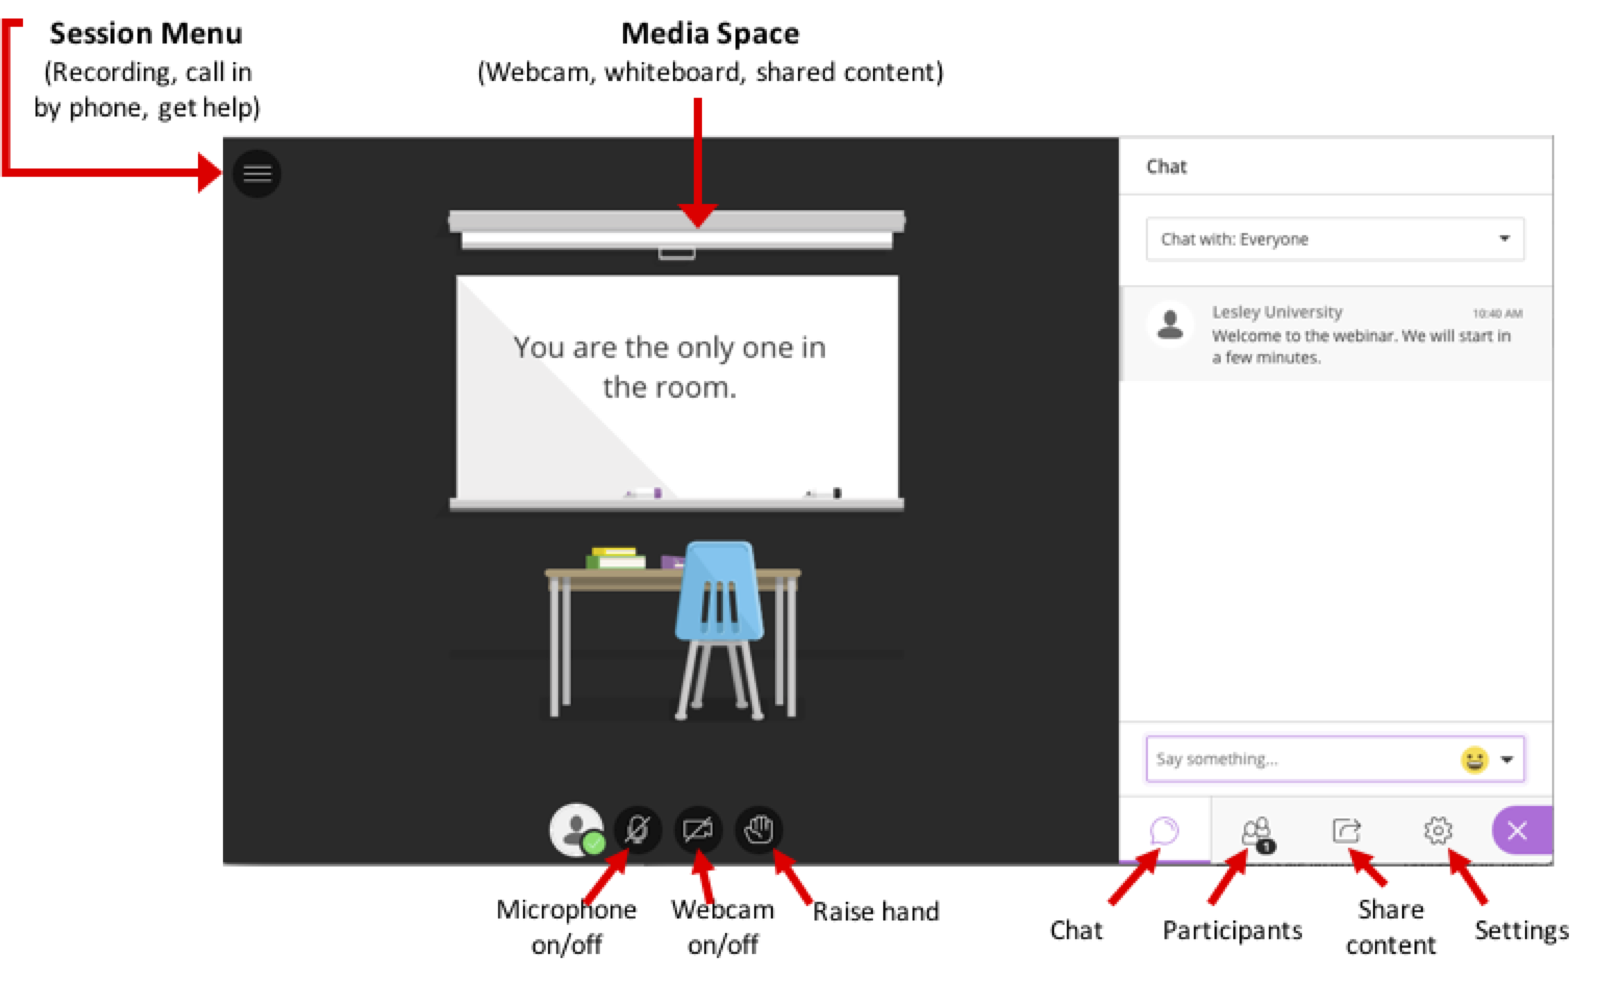 Collaborate Ultra annotated image